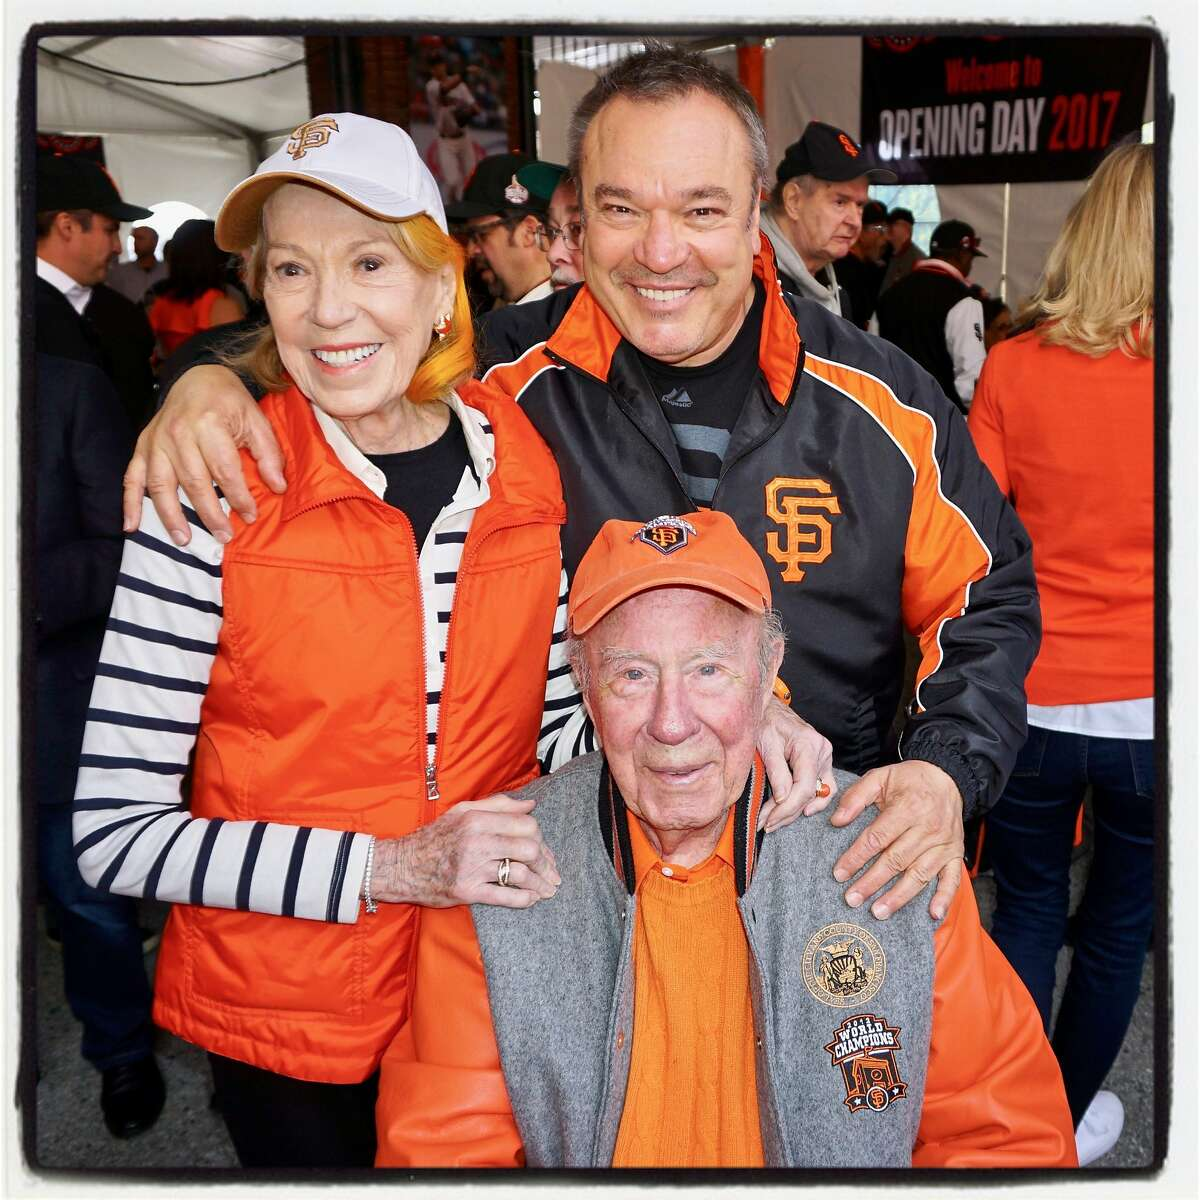 Charlotte Shultz and Stanlee Gatti (standing) celebrate Giants opening day with George Shultz AT&T ballpark. April 10, 2017.